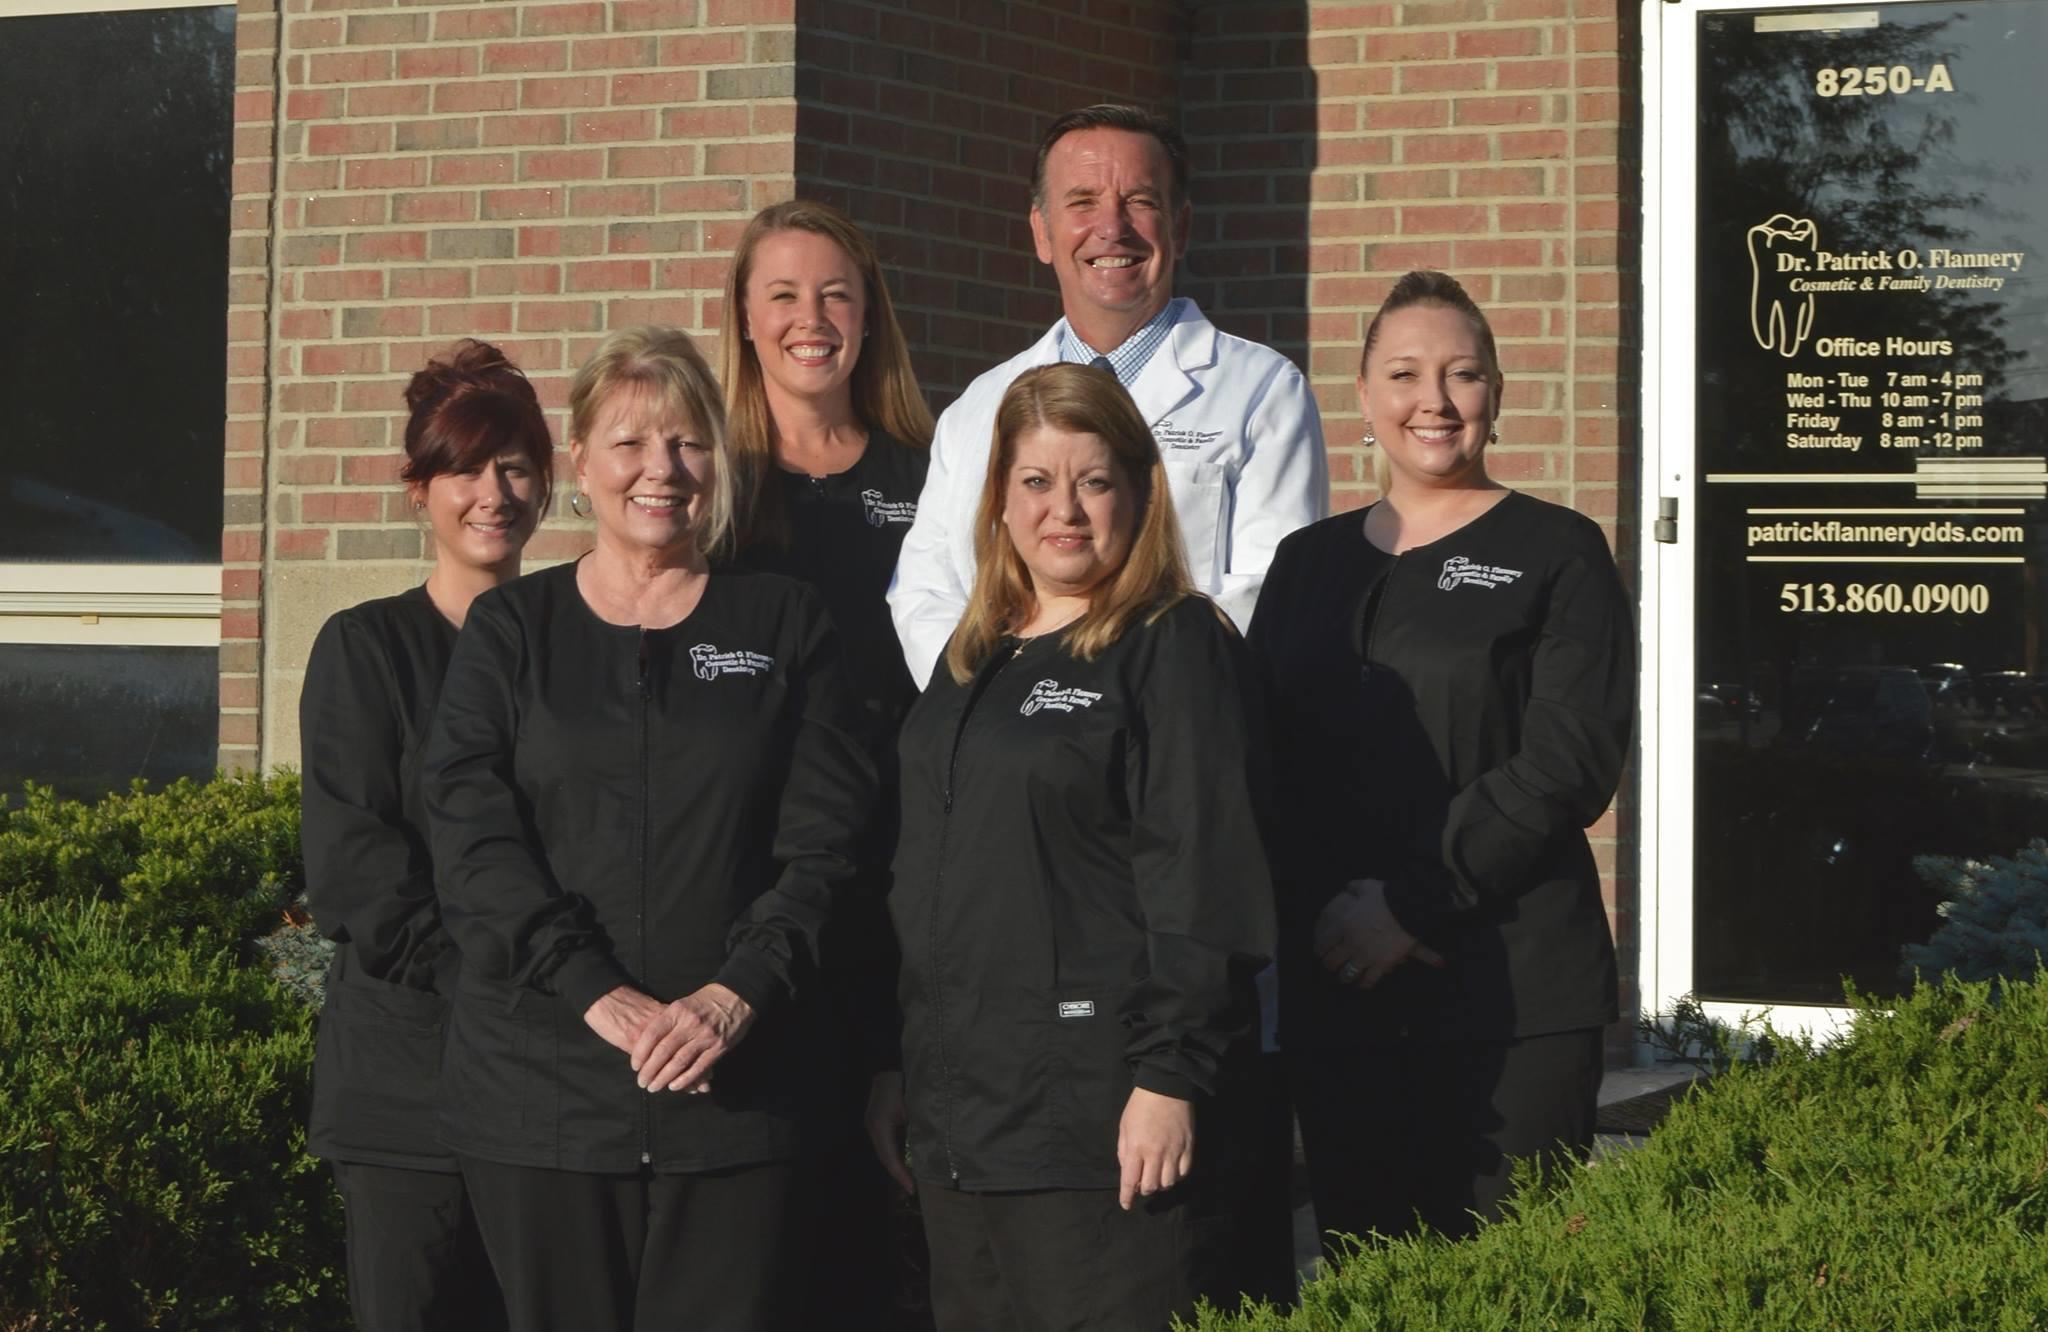 Patrick O. Flannery, DDS, Inc. image 1